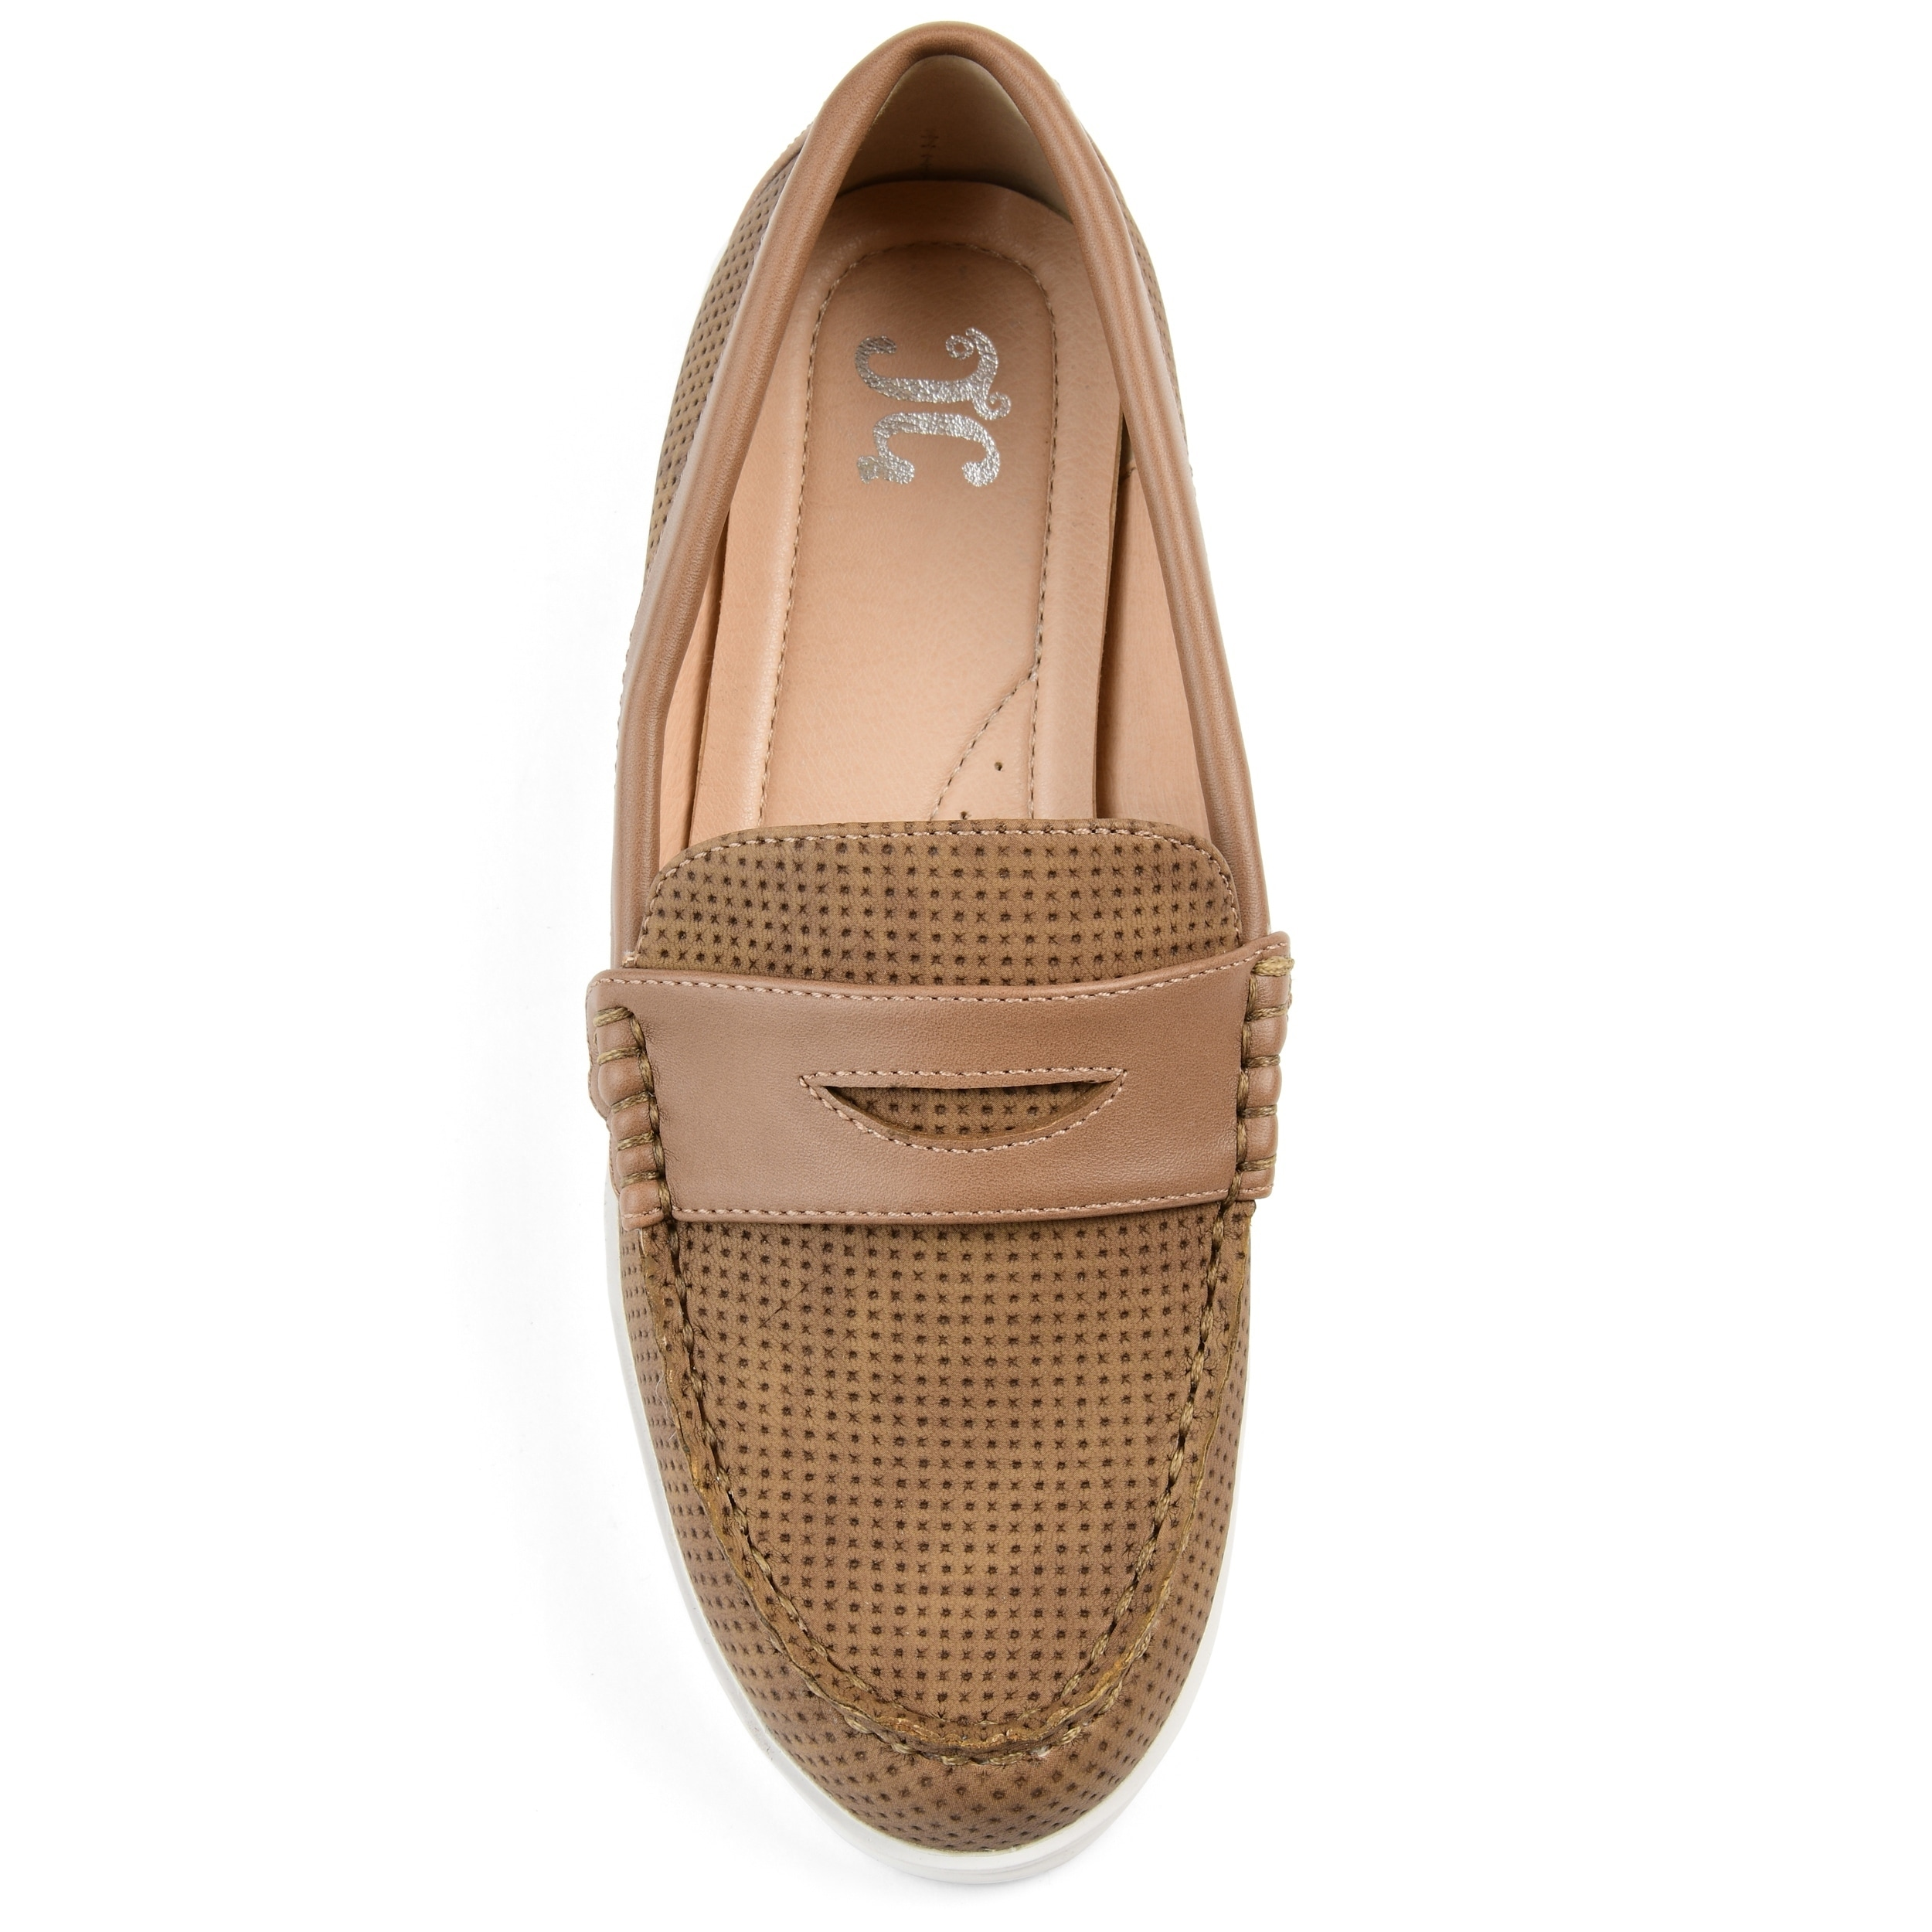 b79eafa2ca0 Shop Journee Collection Comfort Irina Women s Loafers - Free Shipping Today  - Overstock - 20979615